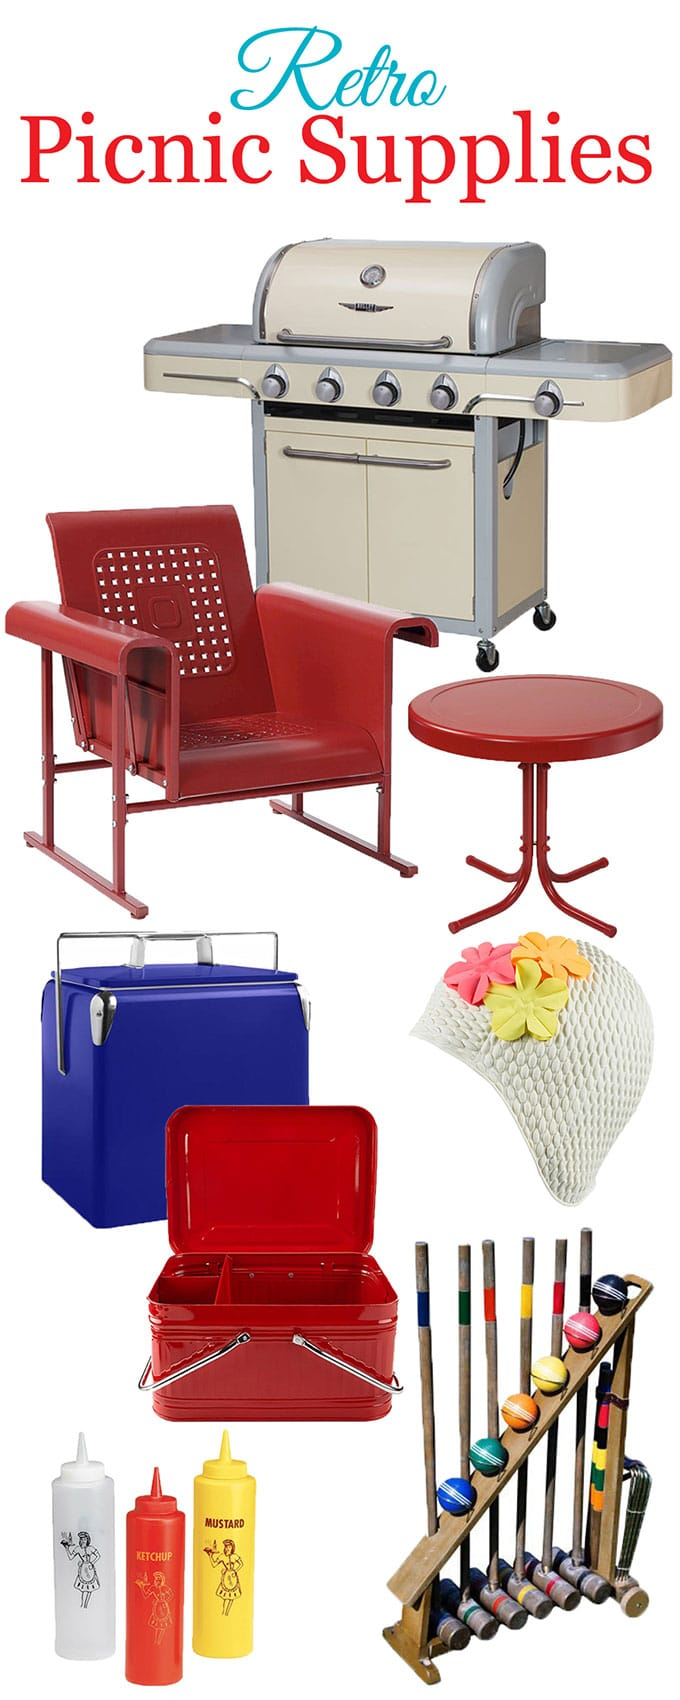 Go RETRO for your 4th Of July barbecue with some big and bold nostalgic picnic supplies.